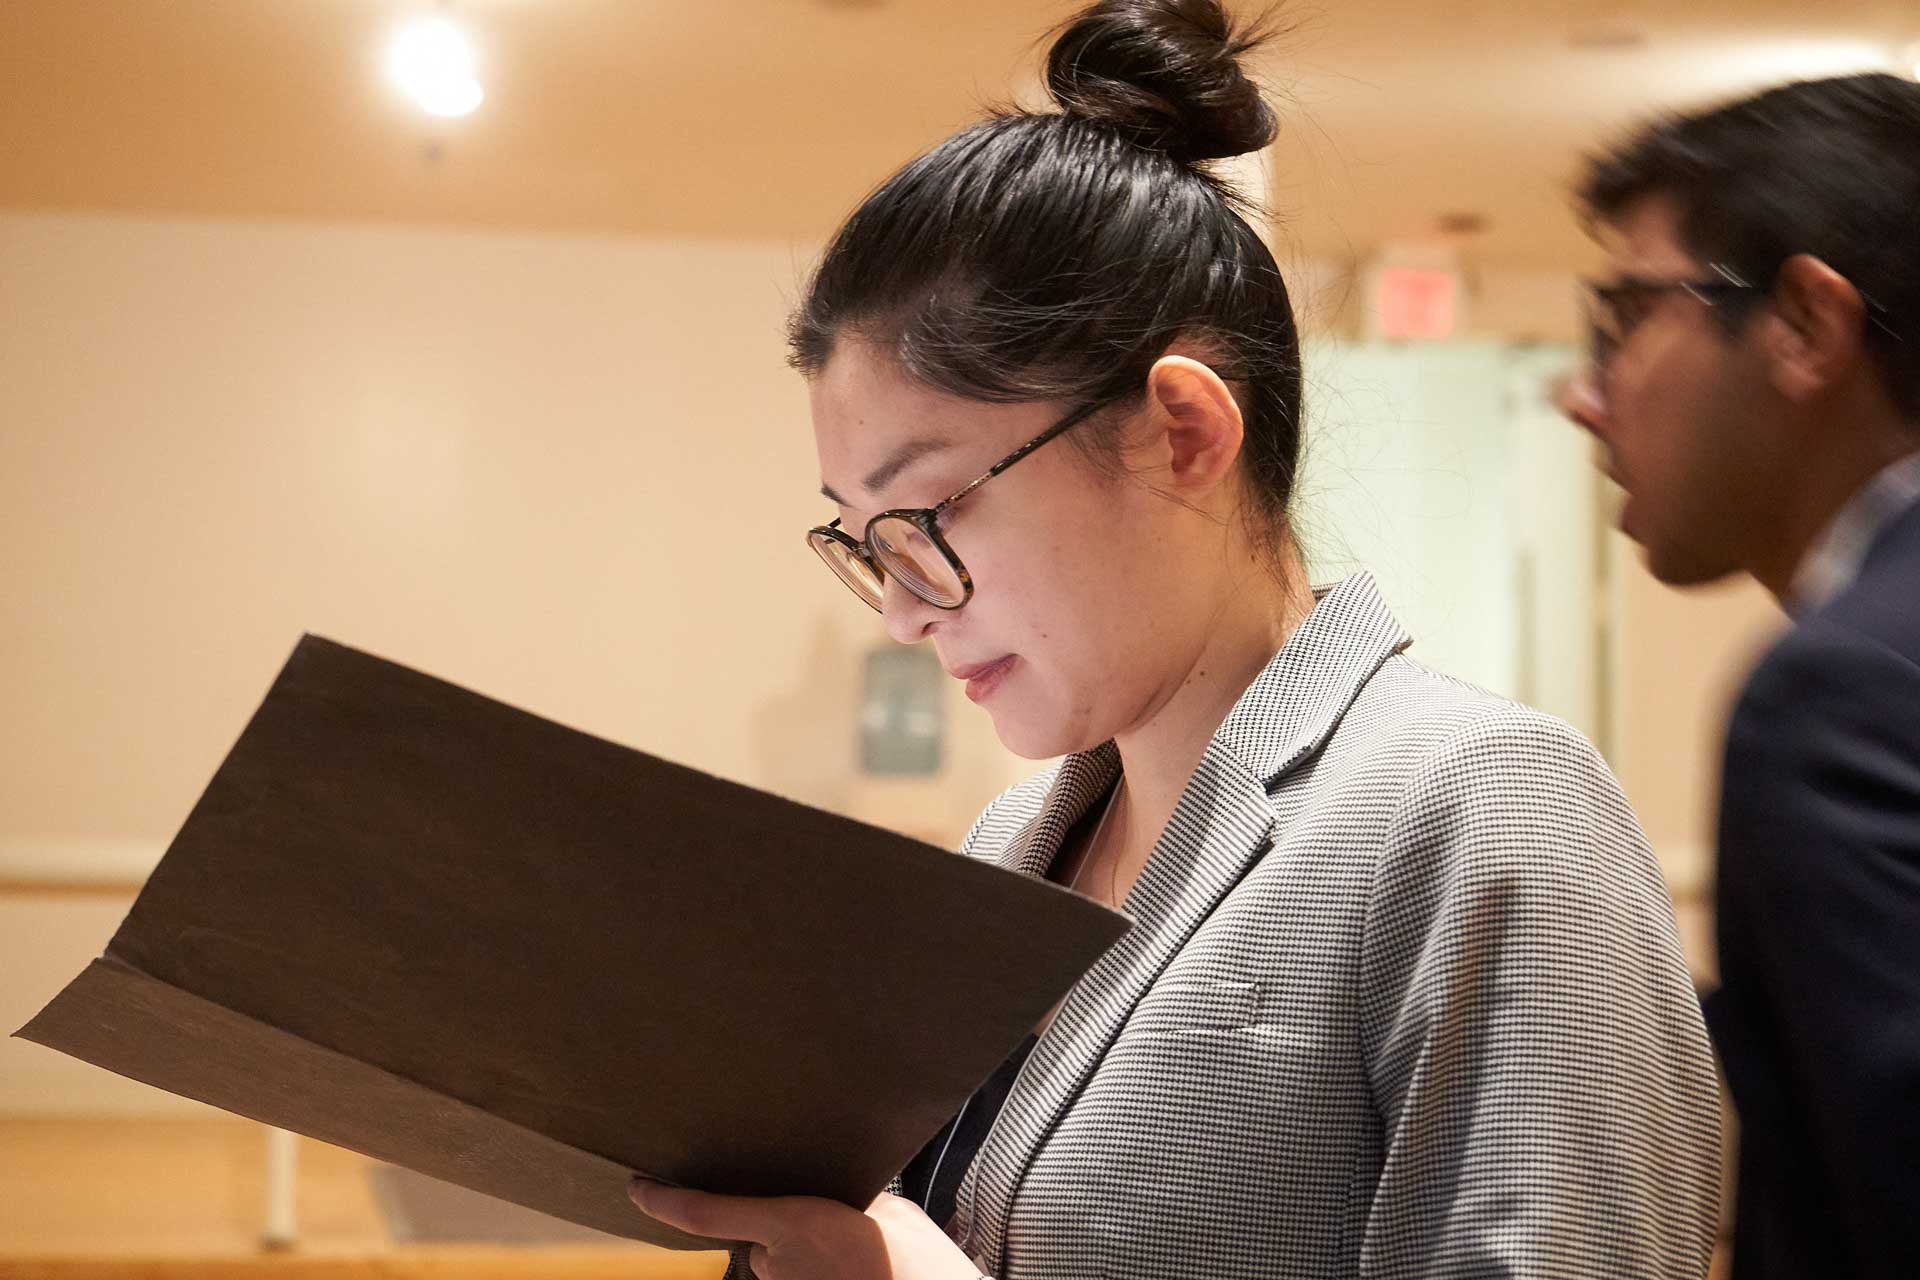 A student consults her paperwork